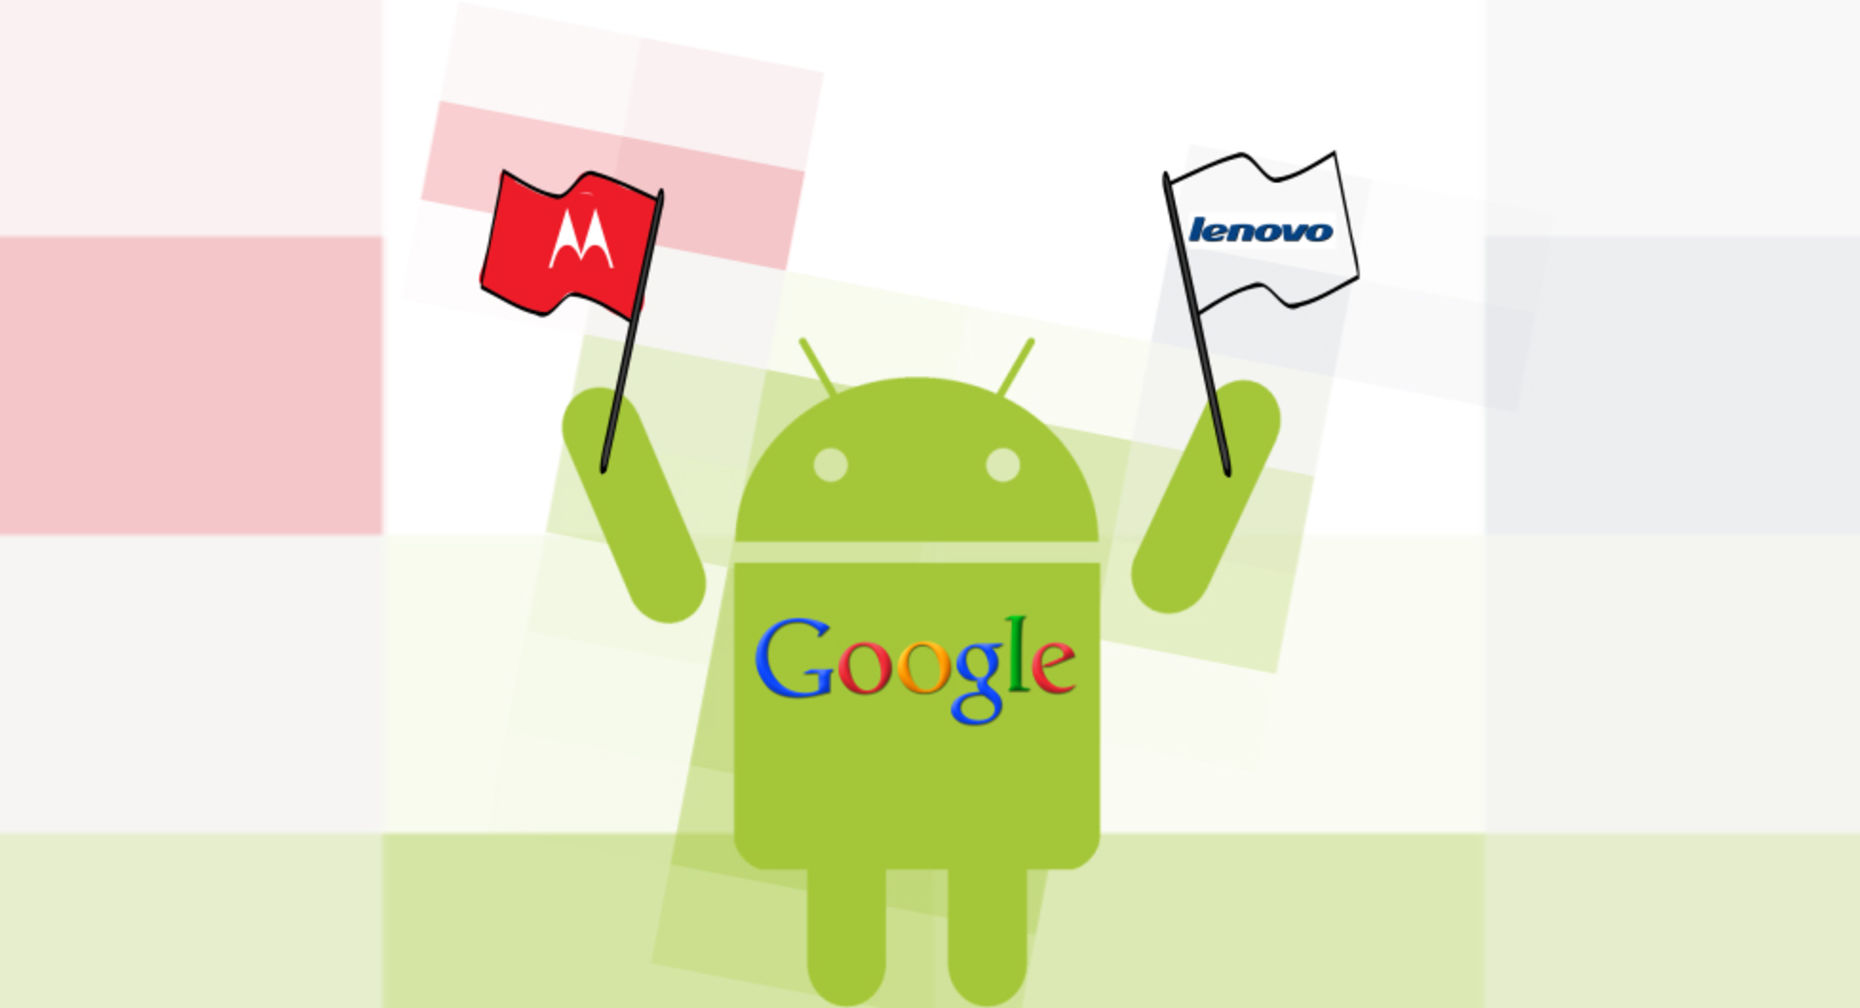 Google's Motorola Experiment: The Silver Linings